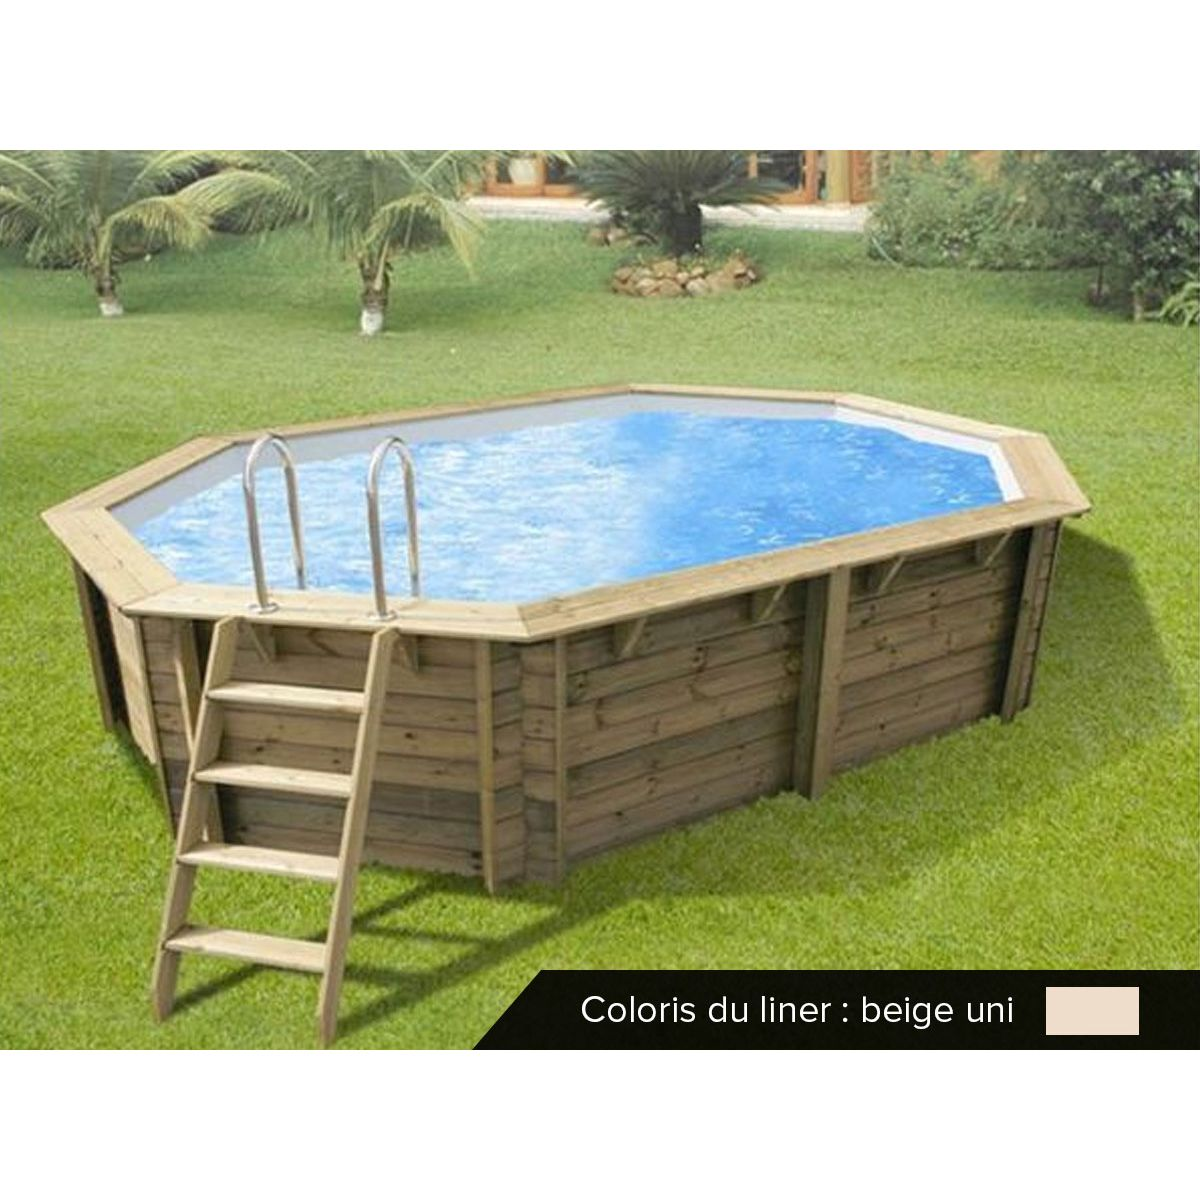 Piscine Bois Sunwater 4 90 X 3 00 X 1 20 Ubbink Outdoor Furniture Sets Outdoor Decor Pool Decks